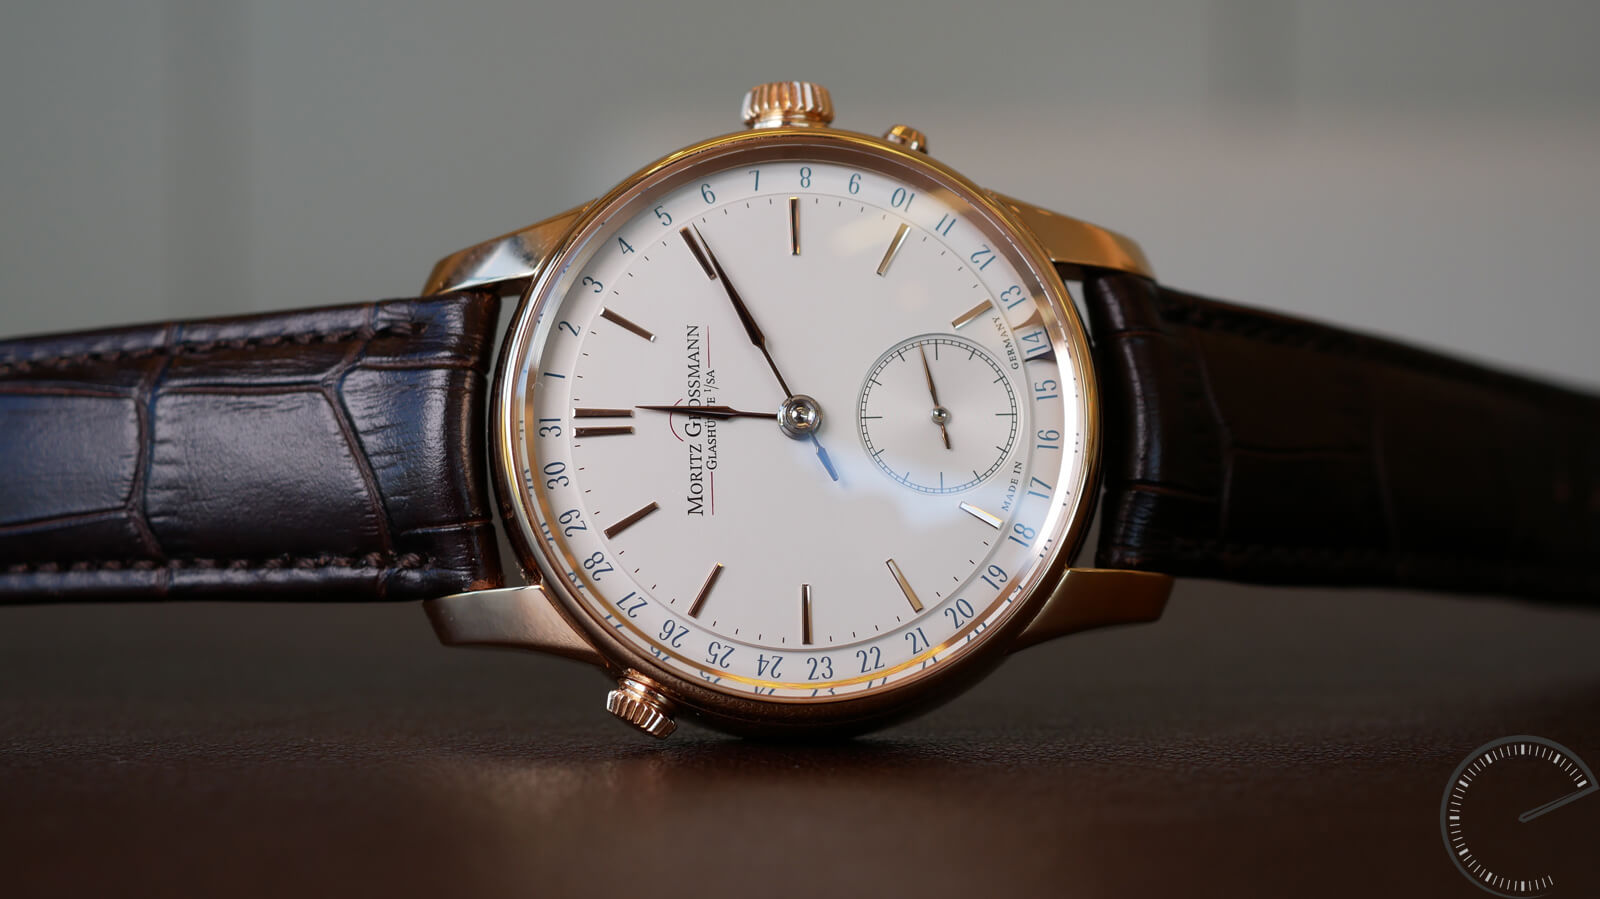 Moritz Grossman ATUM date - timepiece equipped with engraved balance cock